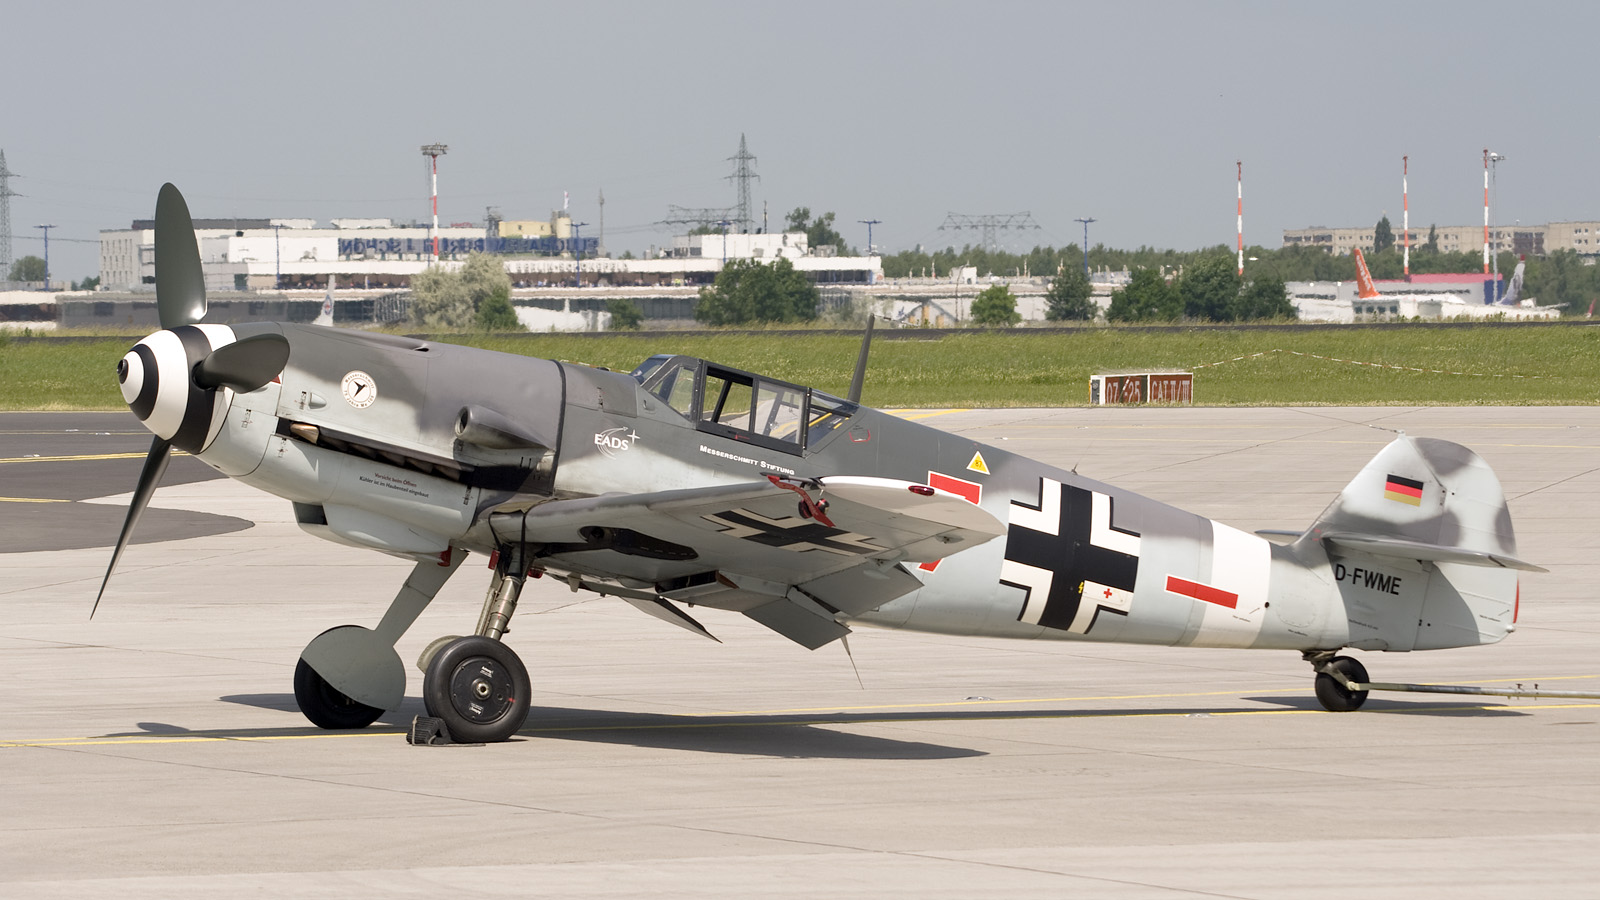 Flying Heritage Collection - Messerschmitt Bf 109 E-3 (Emil)